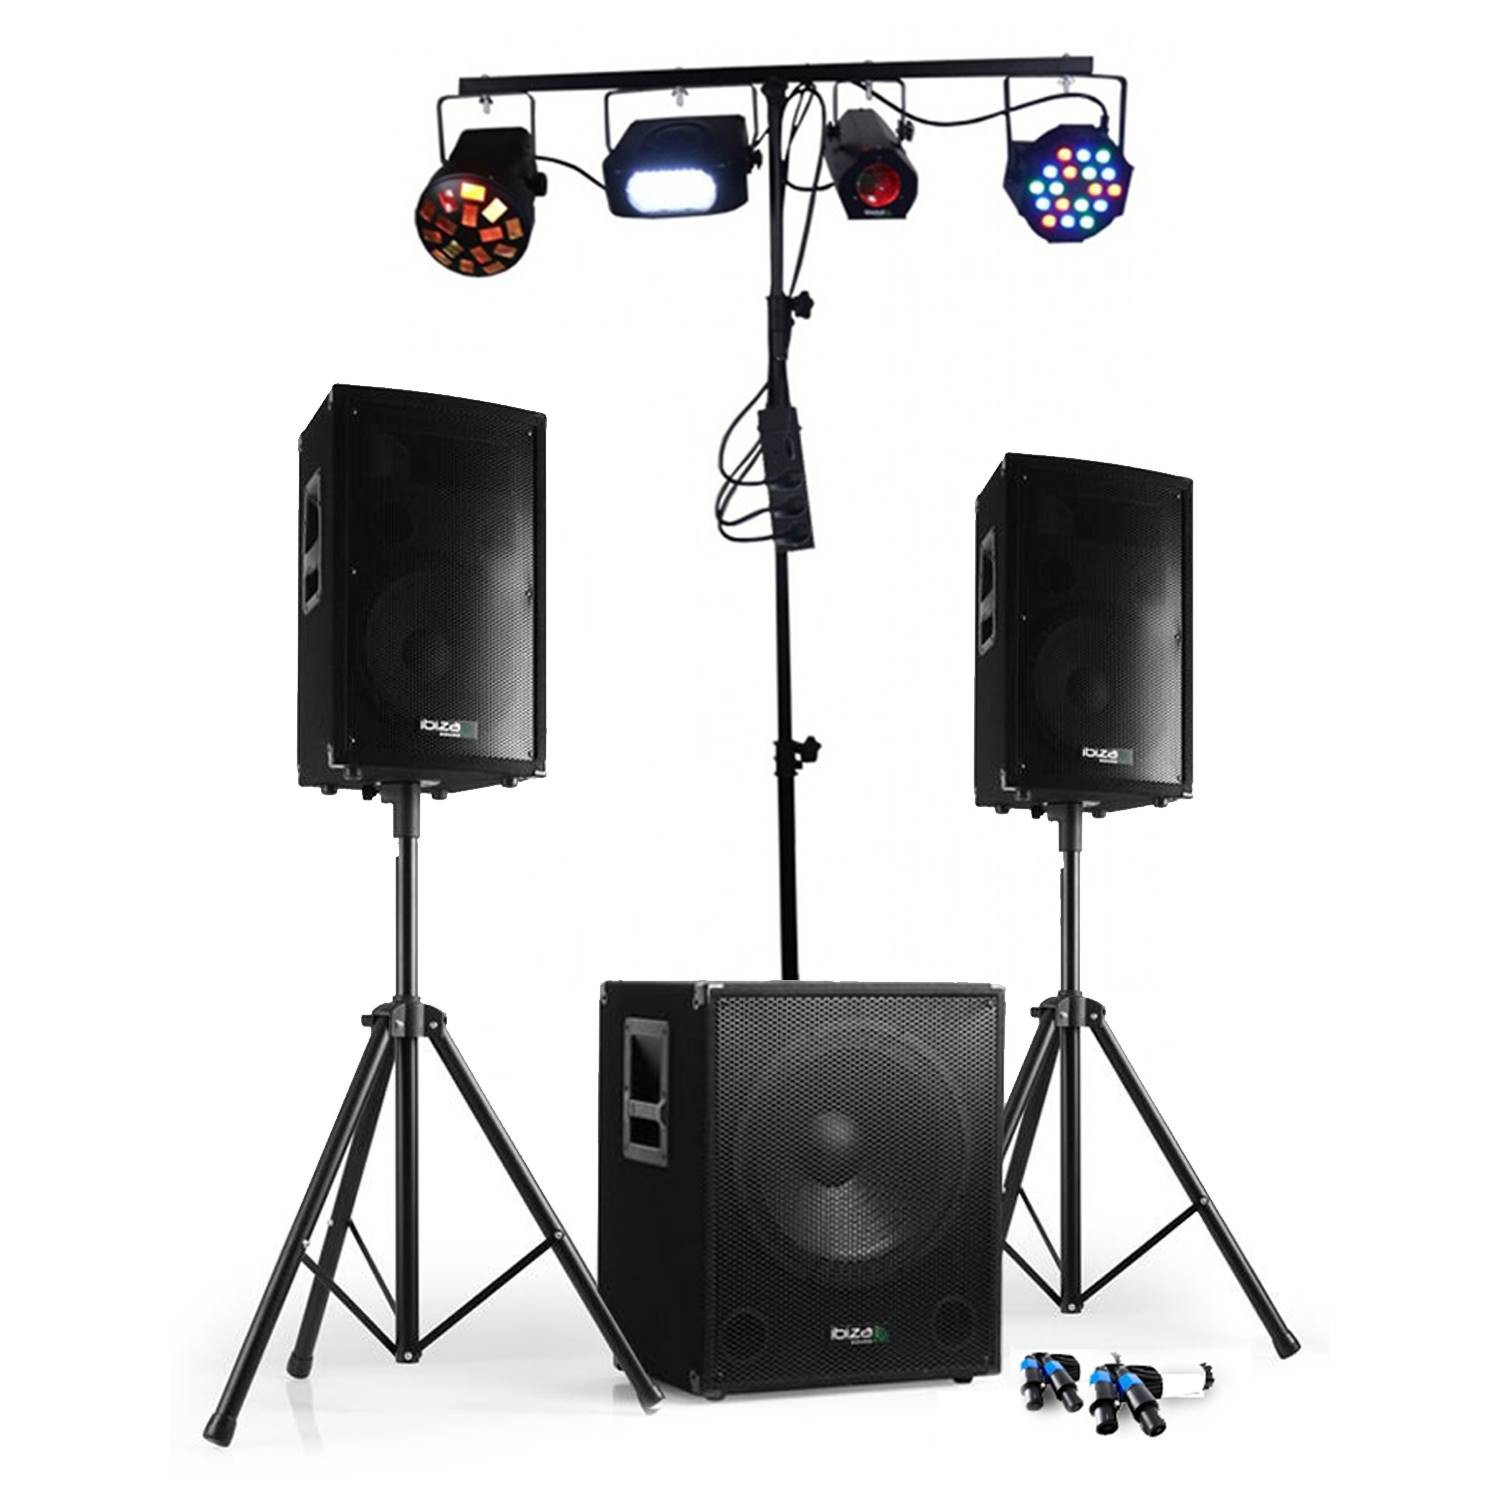 800W Subwoofer + 2 Satellites + Feet + 4 Sets Of Light With Swing pour Jeux Flash A 2